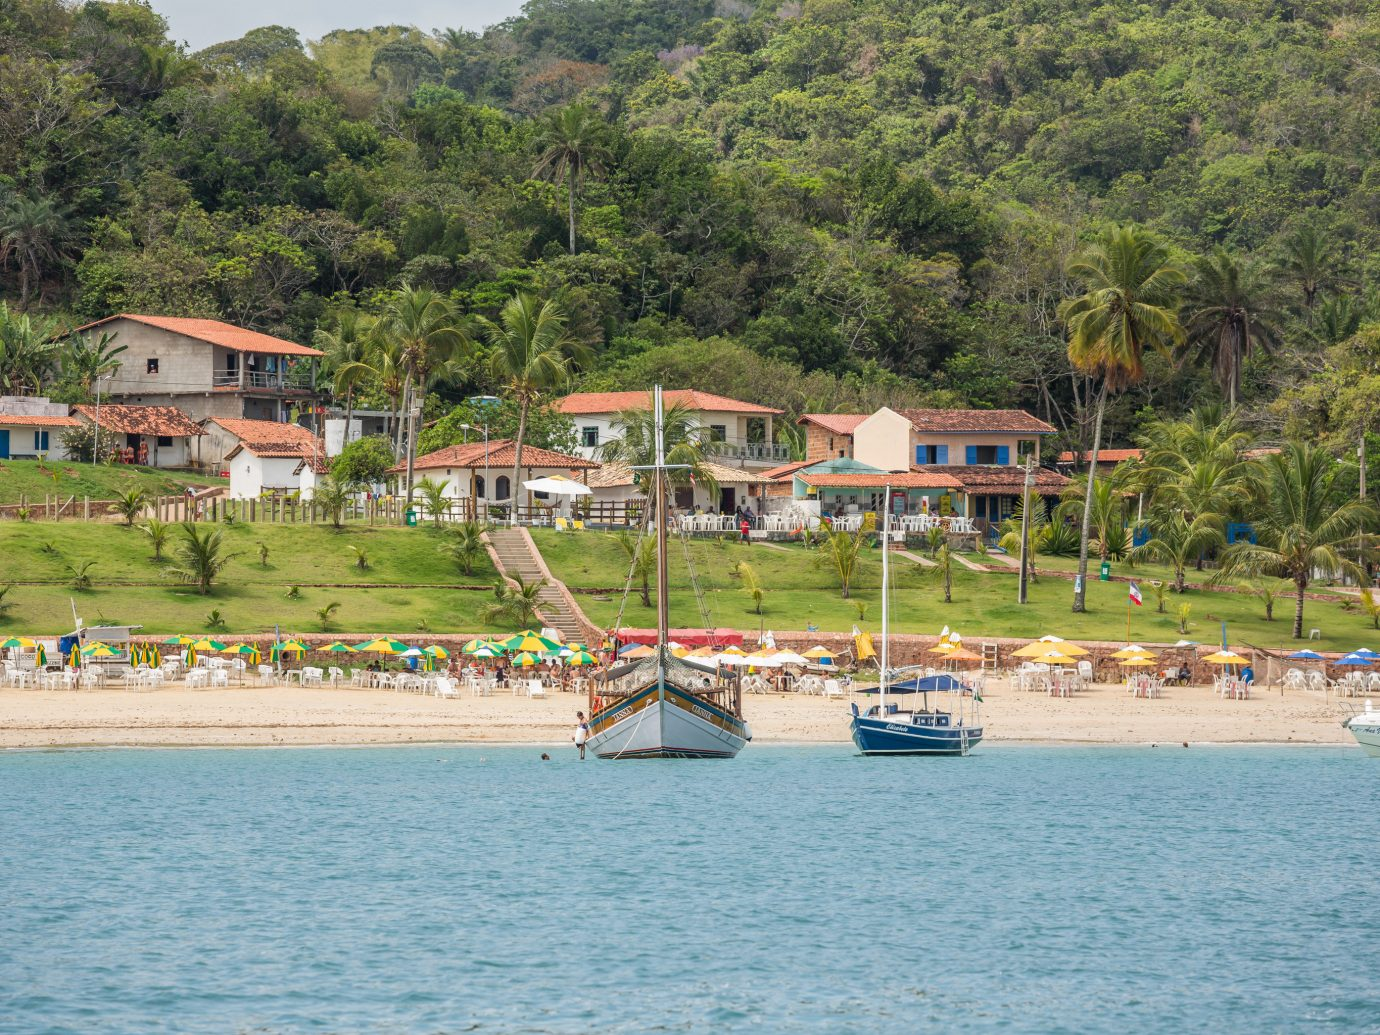 Beaches Brazil Trip Ideas outdoor tree water Boat body of water Sea vacation Beach vehicle bay Coast Island boating caribbean lined shore several